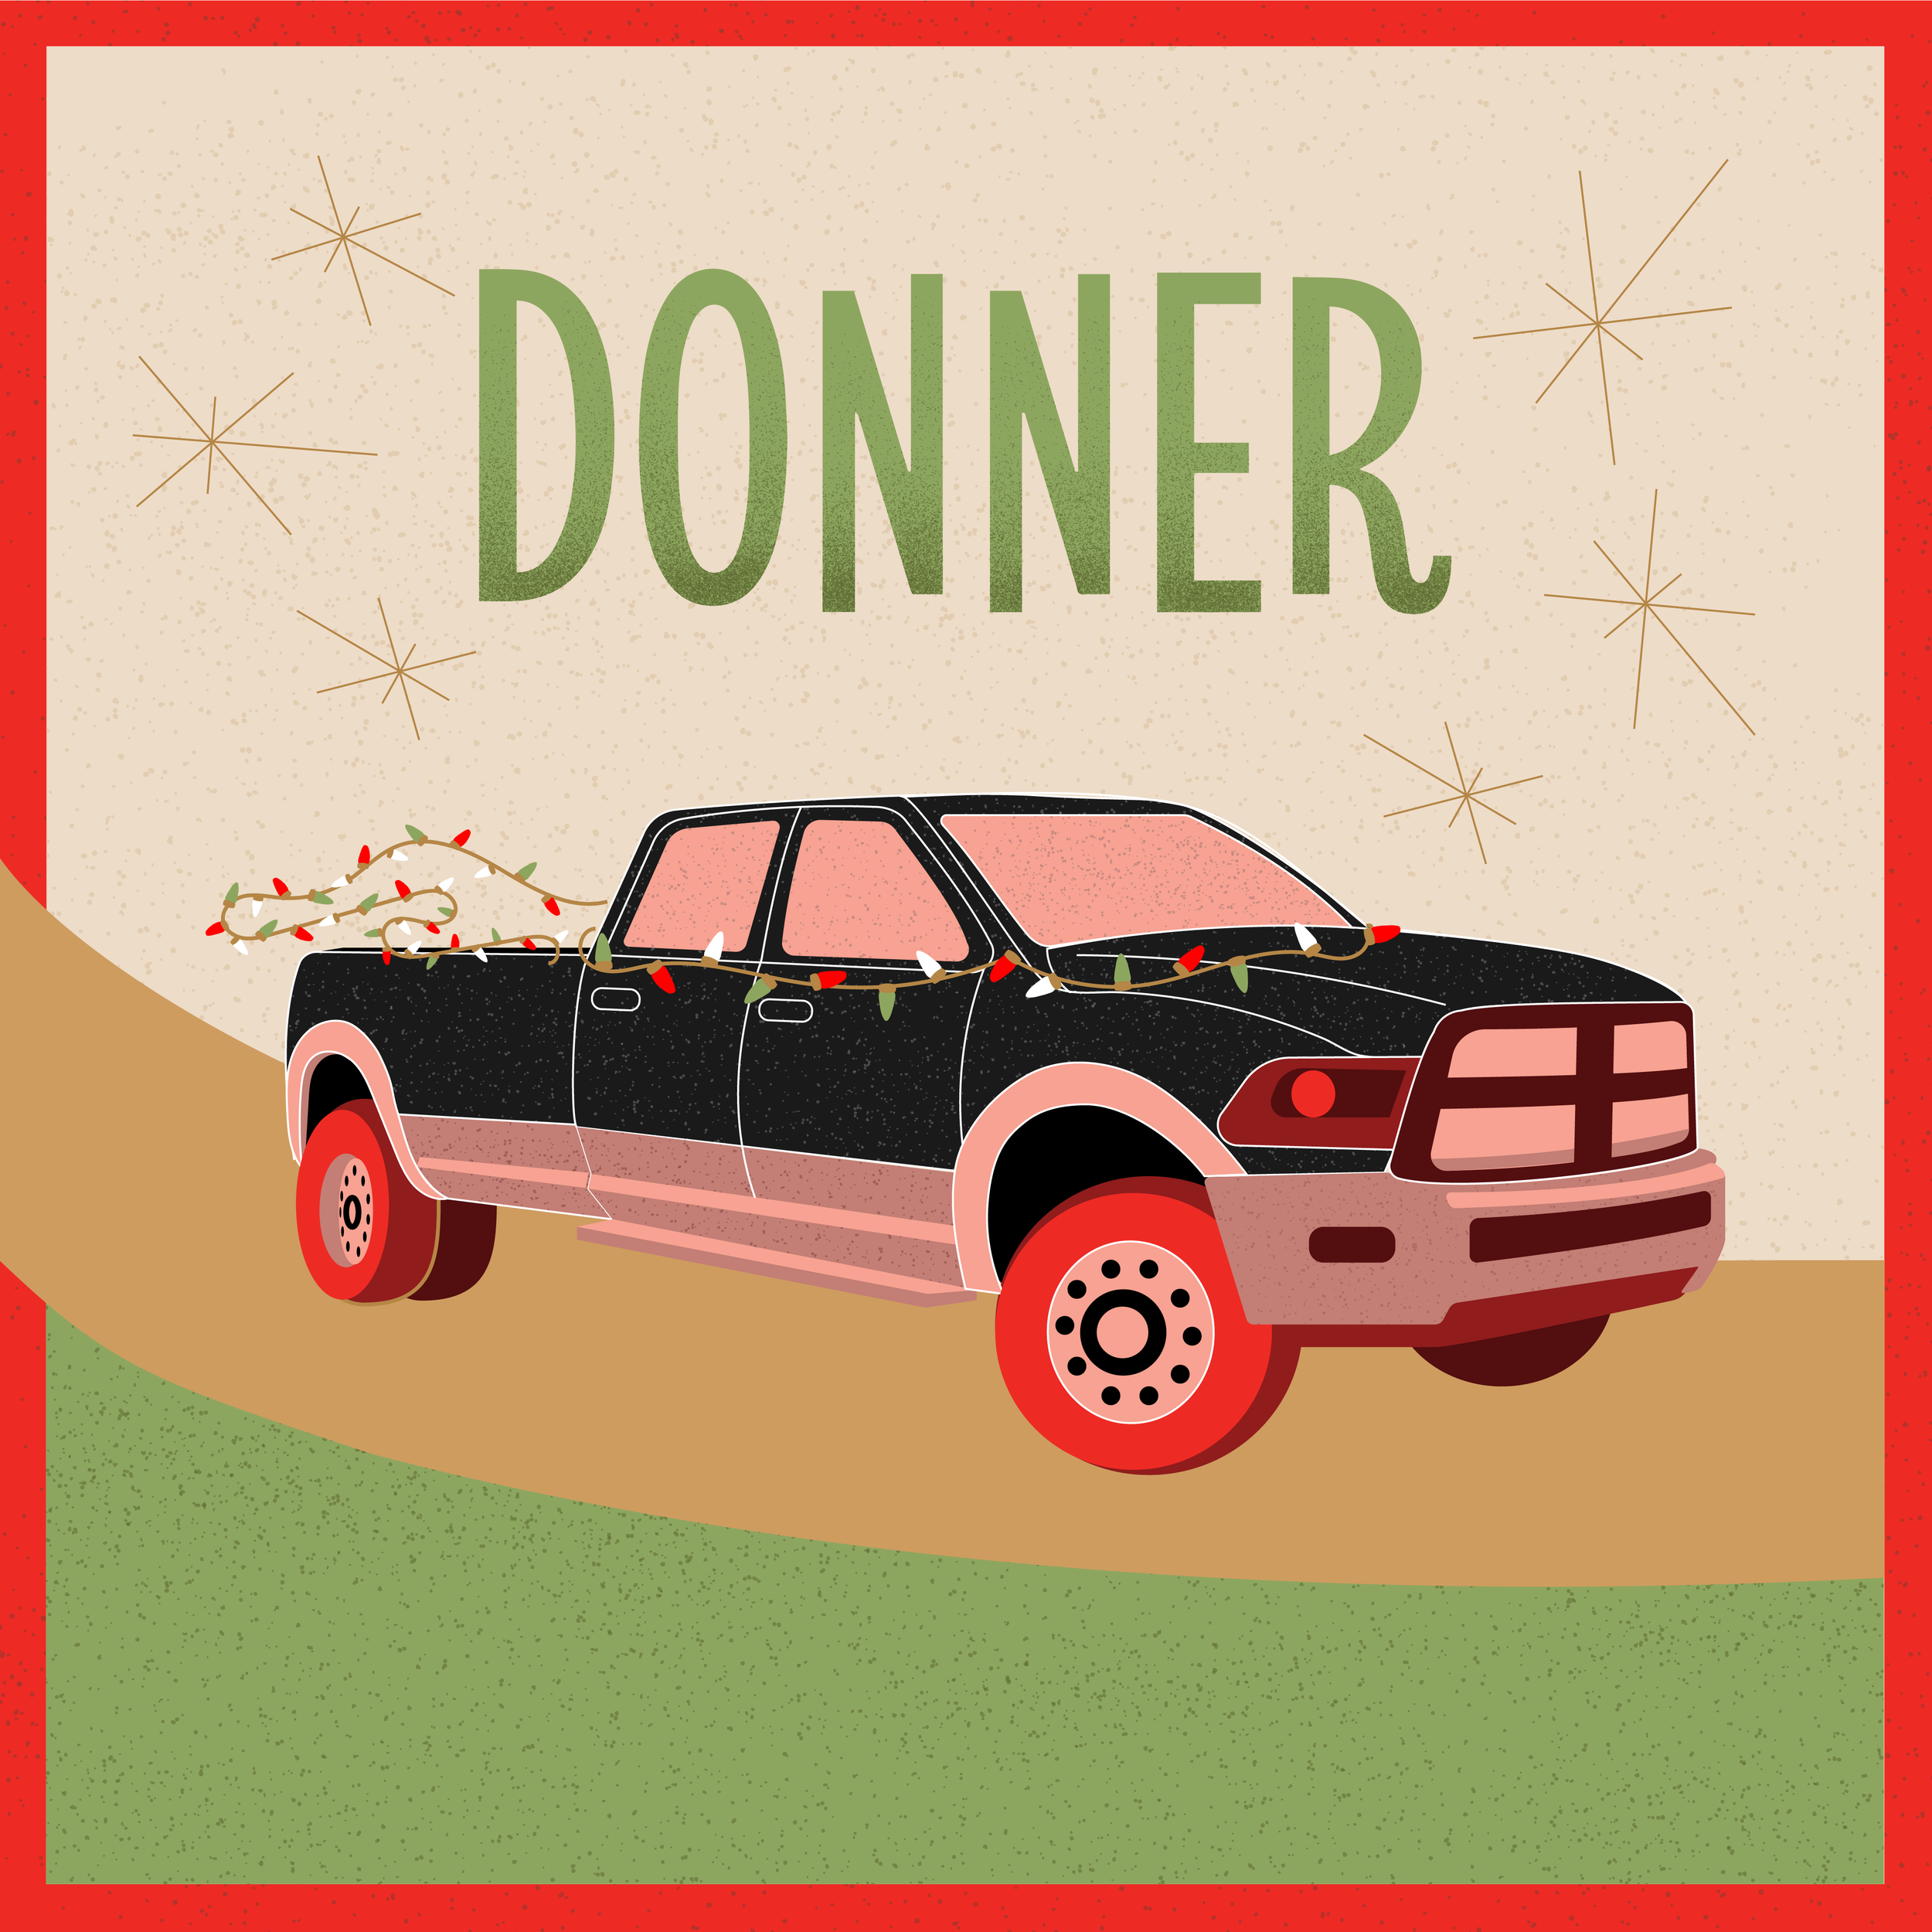 7 Donner-01.png